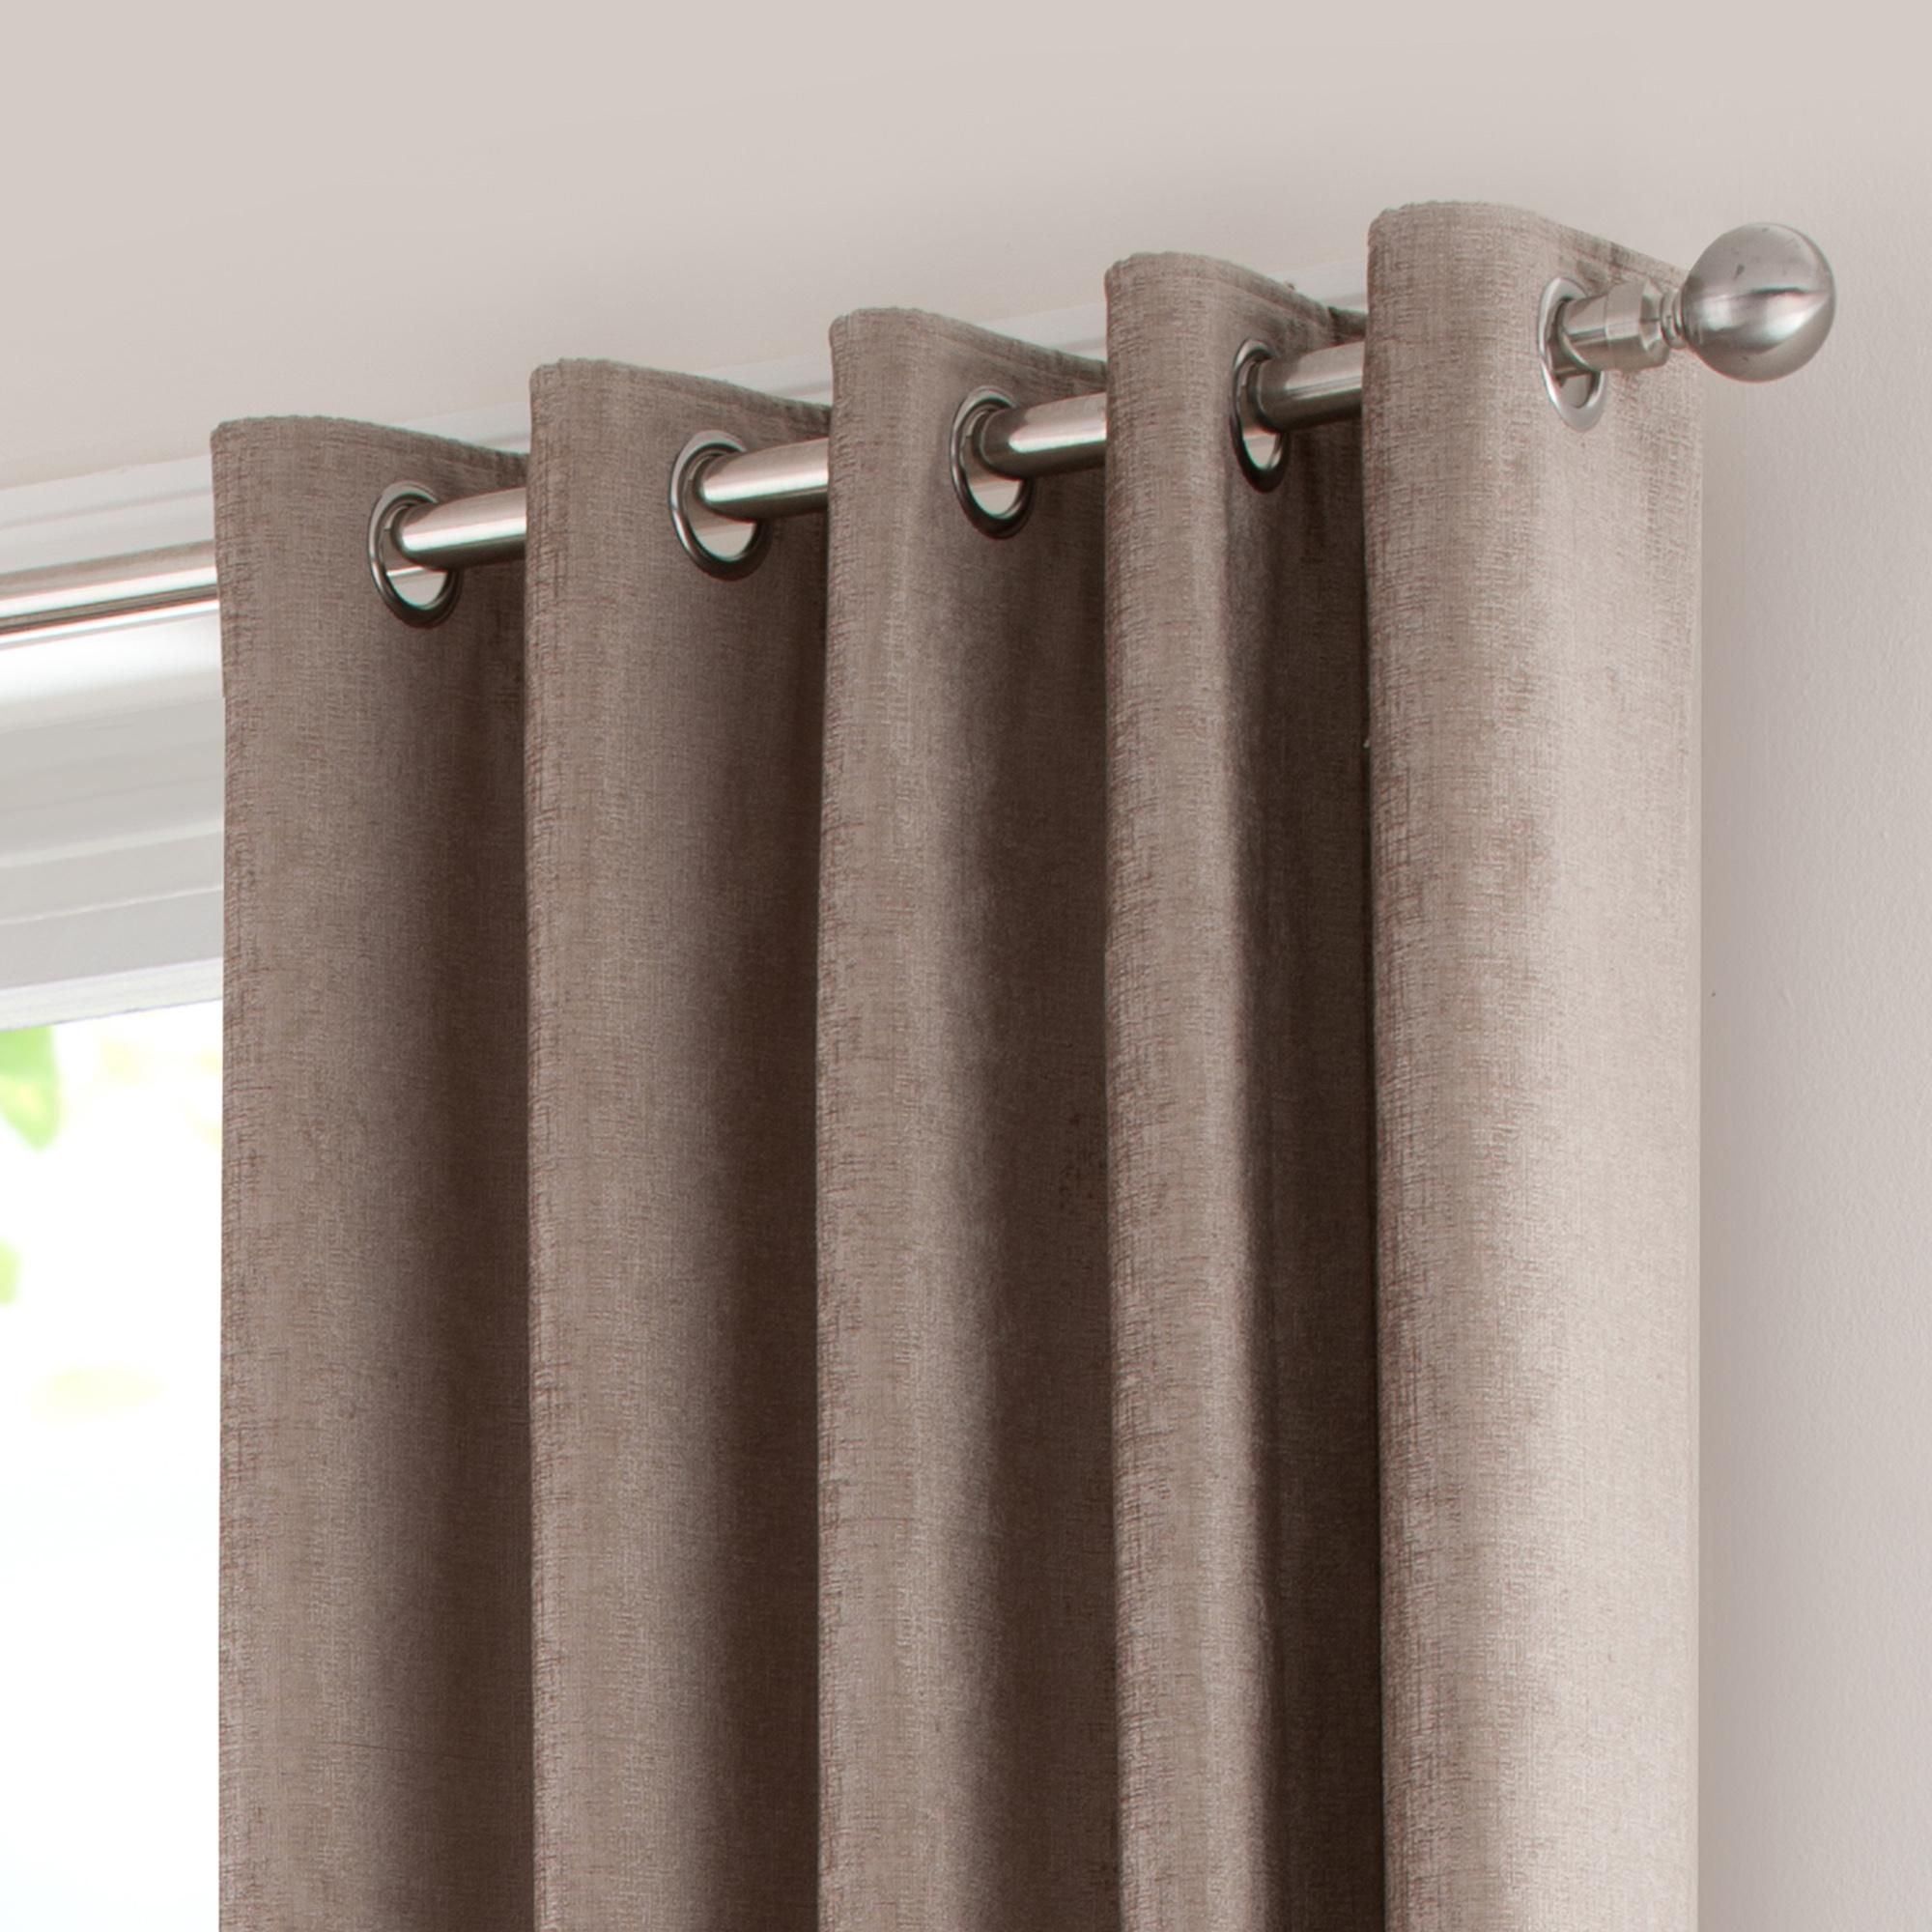 Dunelm Textured Taupe Brown 228x182cm Chenille Lined Eyelet Curtains Curtains Chenille Curtains Taupe Living Room